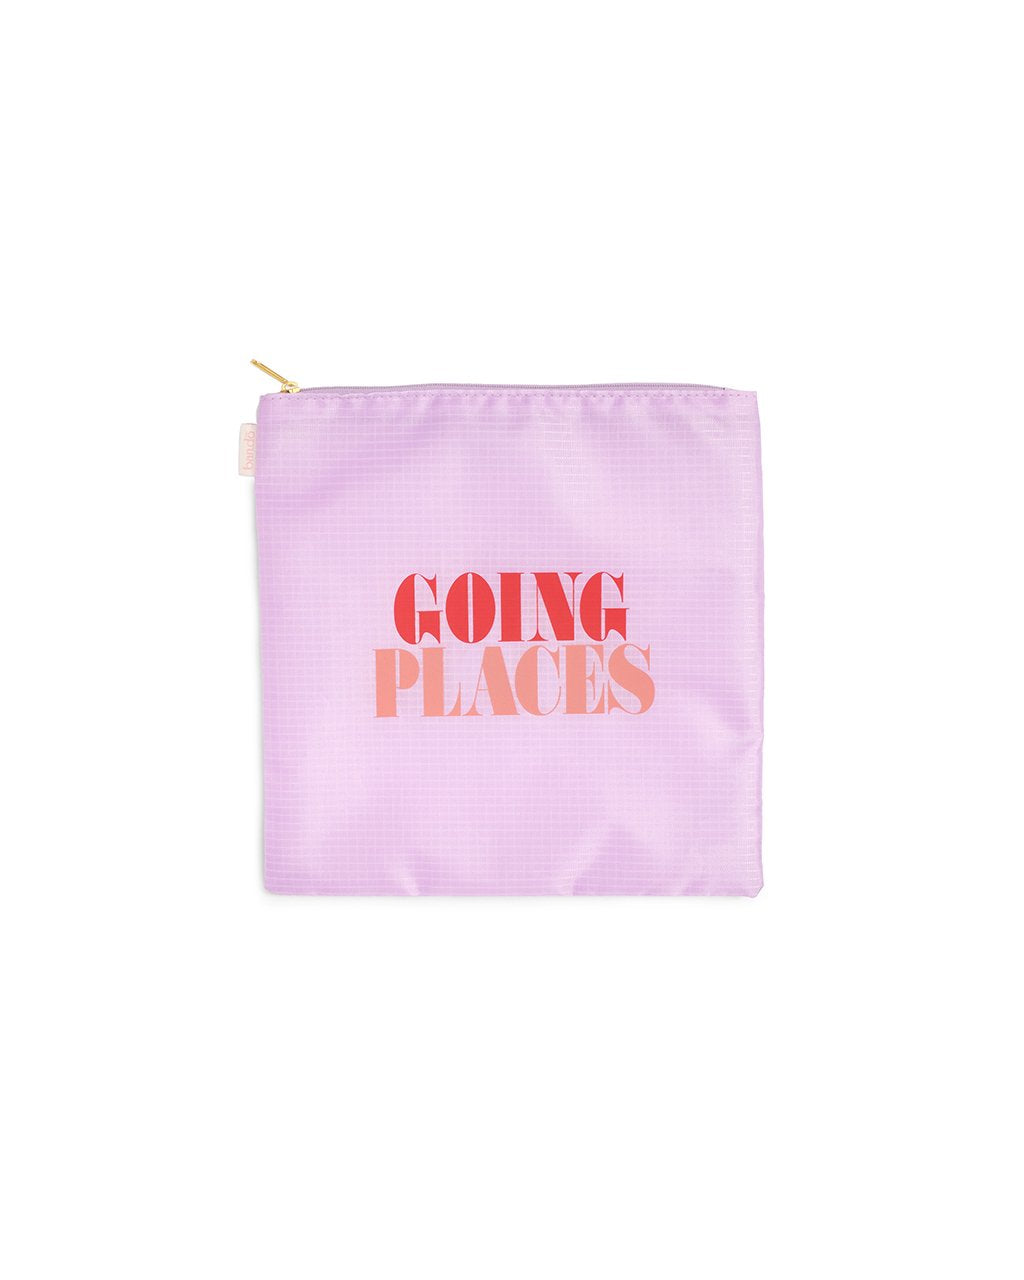 smaller purple  pouch of duo set with the words going places